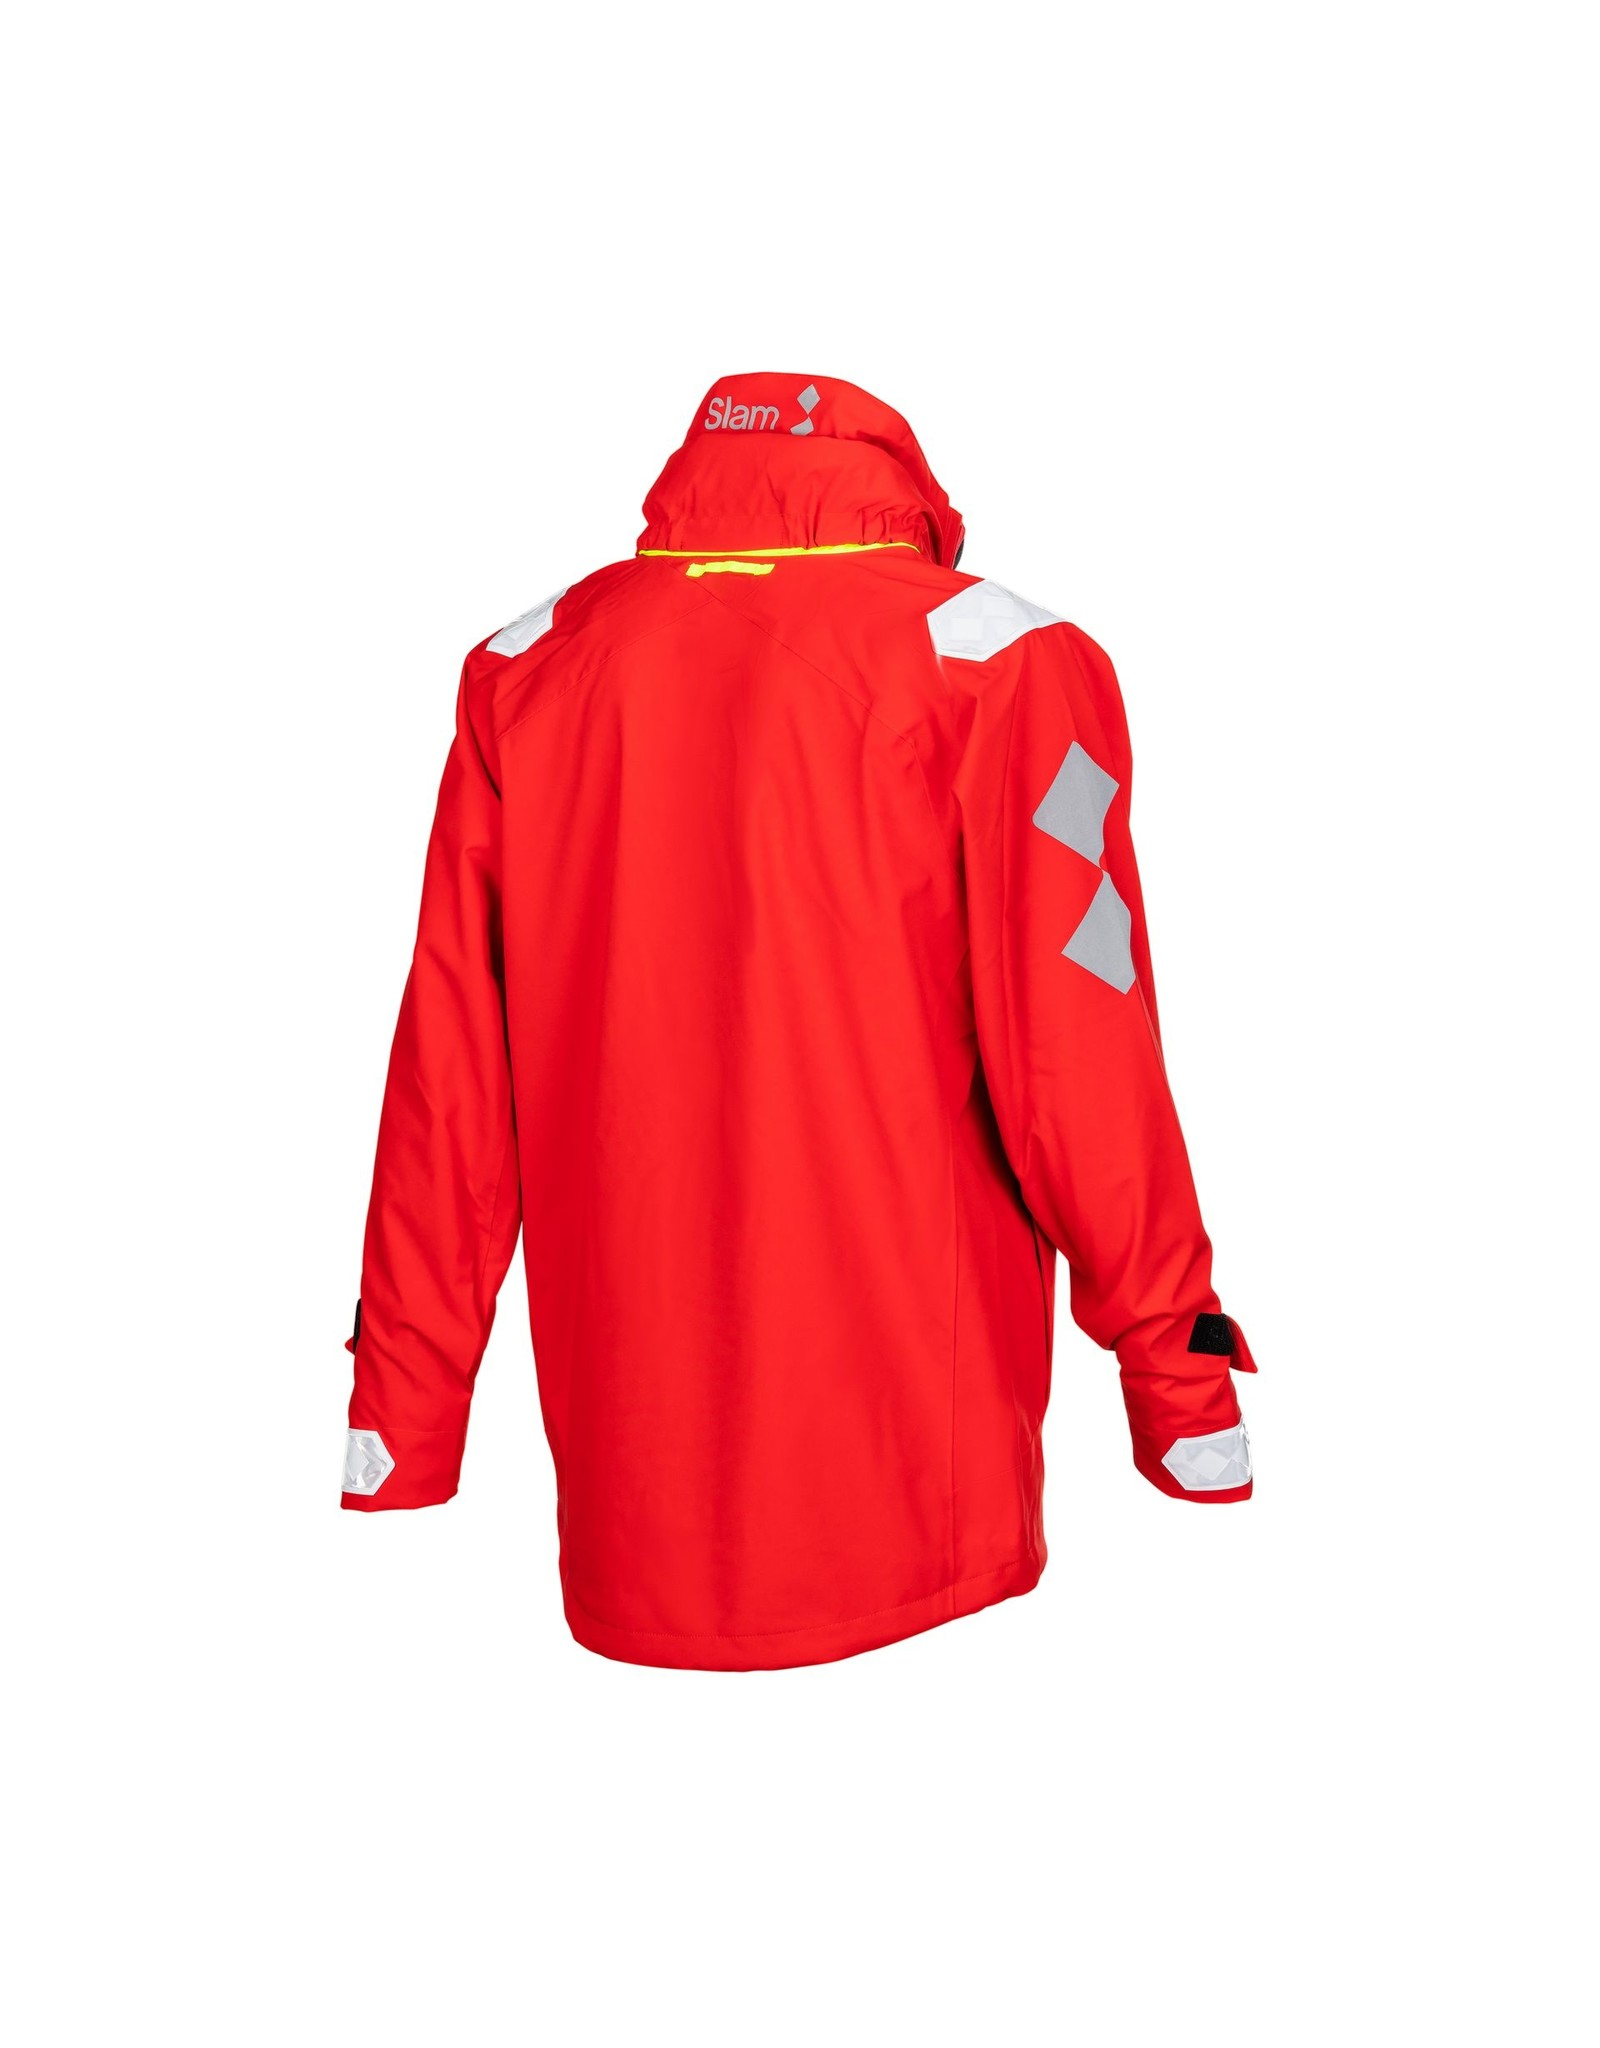 Slam WIN-D 2 Force Jacket - Red (625)